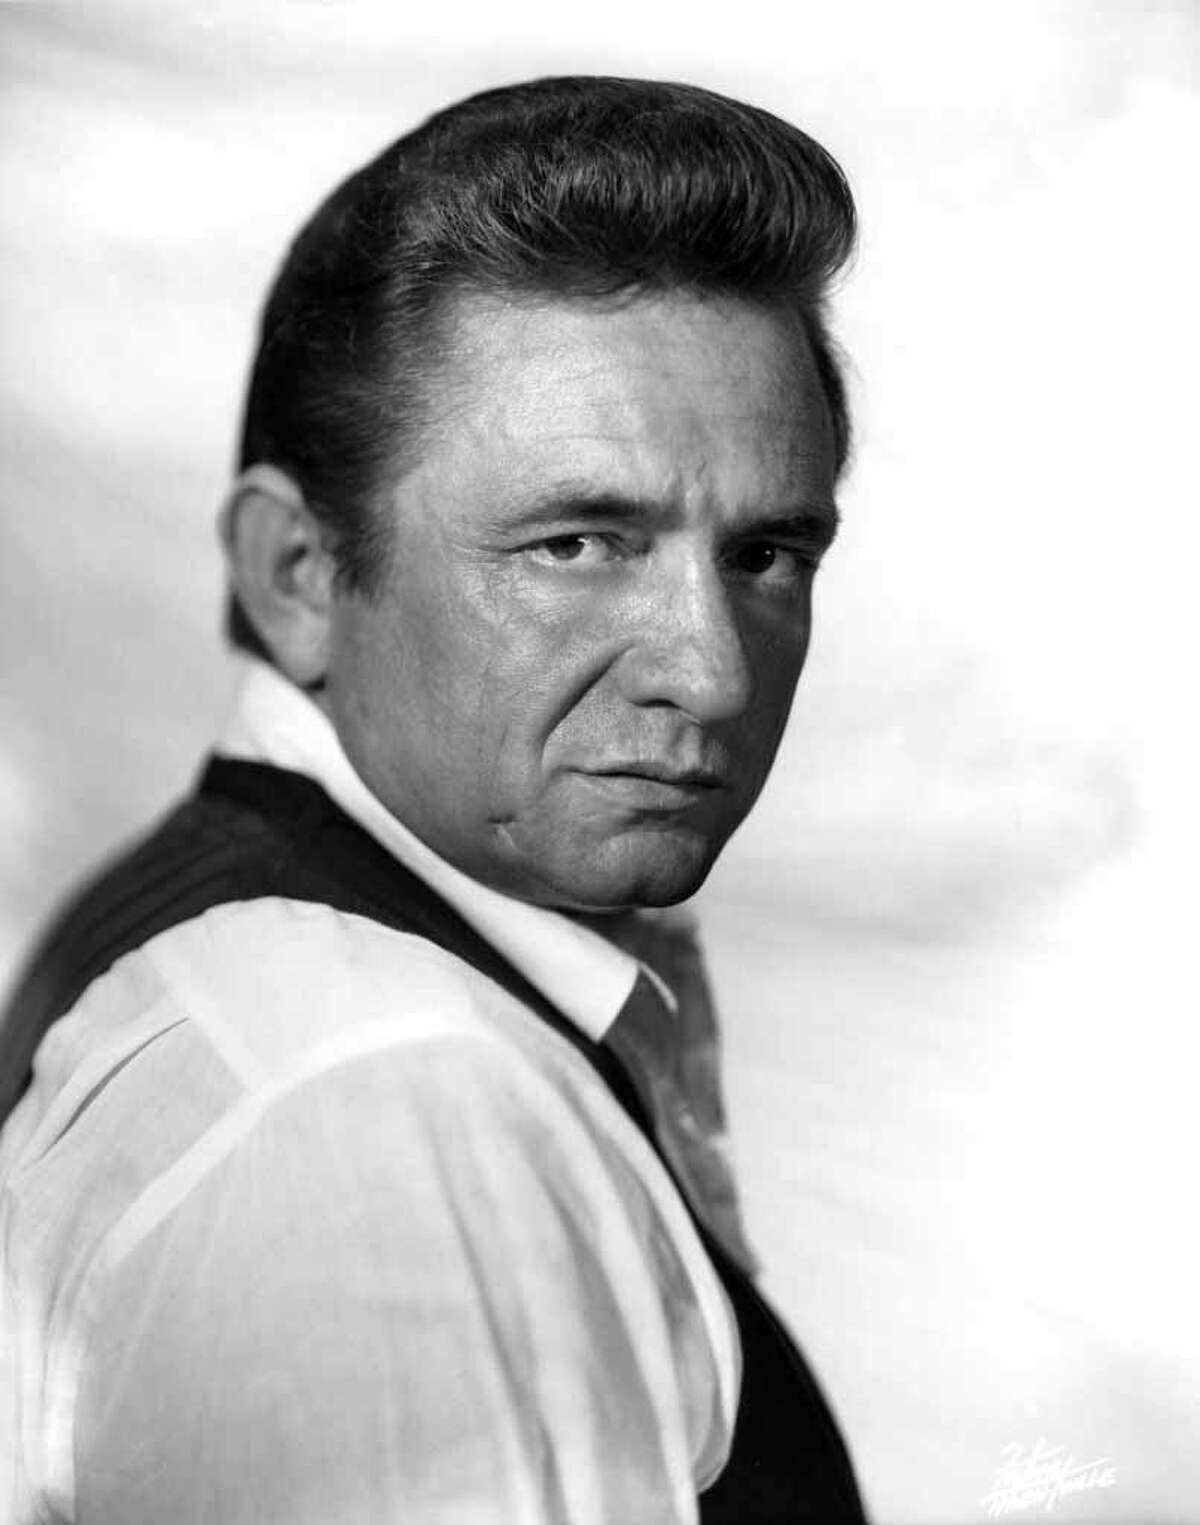 Johnny Cash - (U.S. Air Force) The country musician enlisted on July 7, 1950, he completed his basic training at Lackland Air Force Base and technical training at Brooks Air Force Base, San Antonio, TX.www.johnnycashonline.com